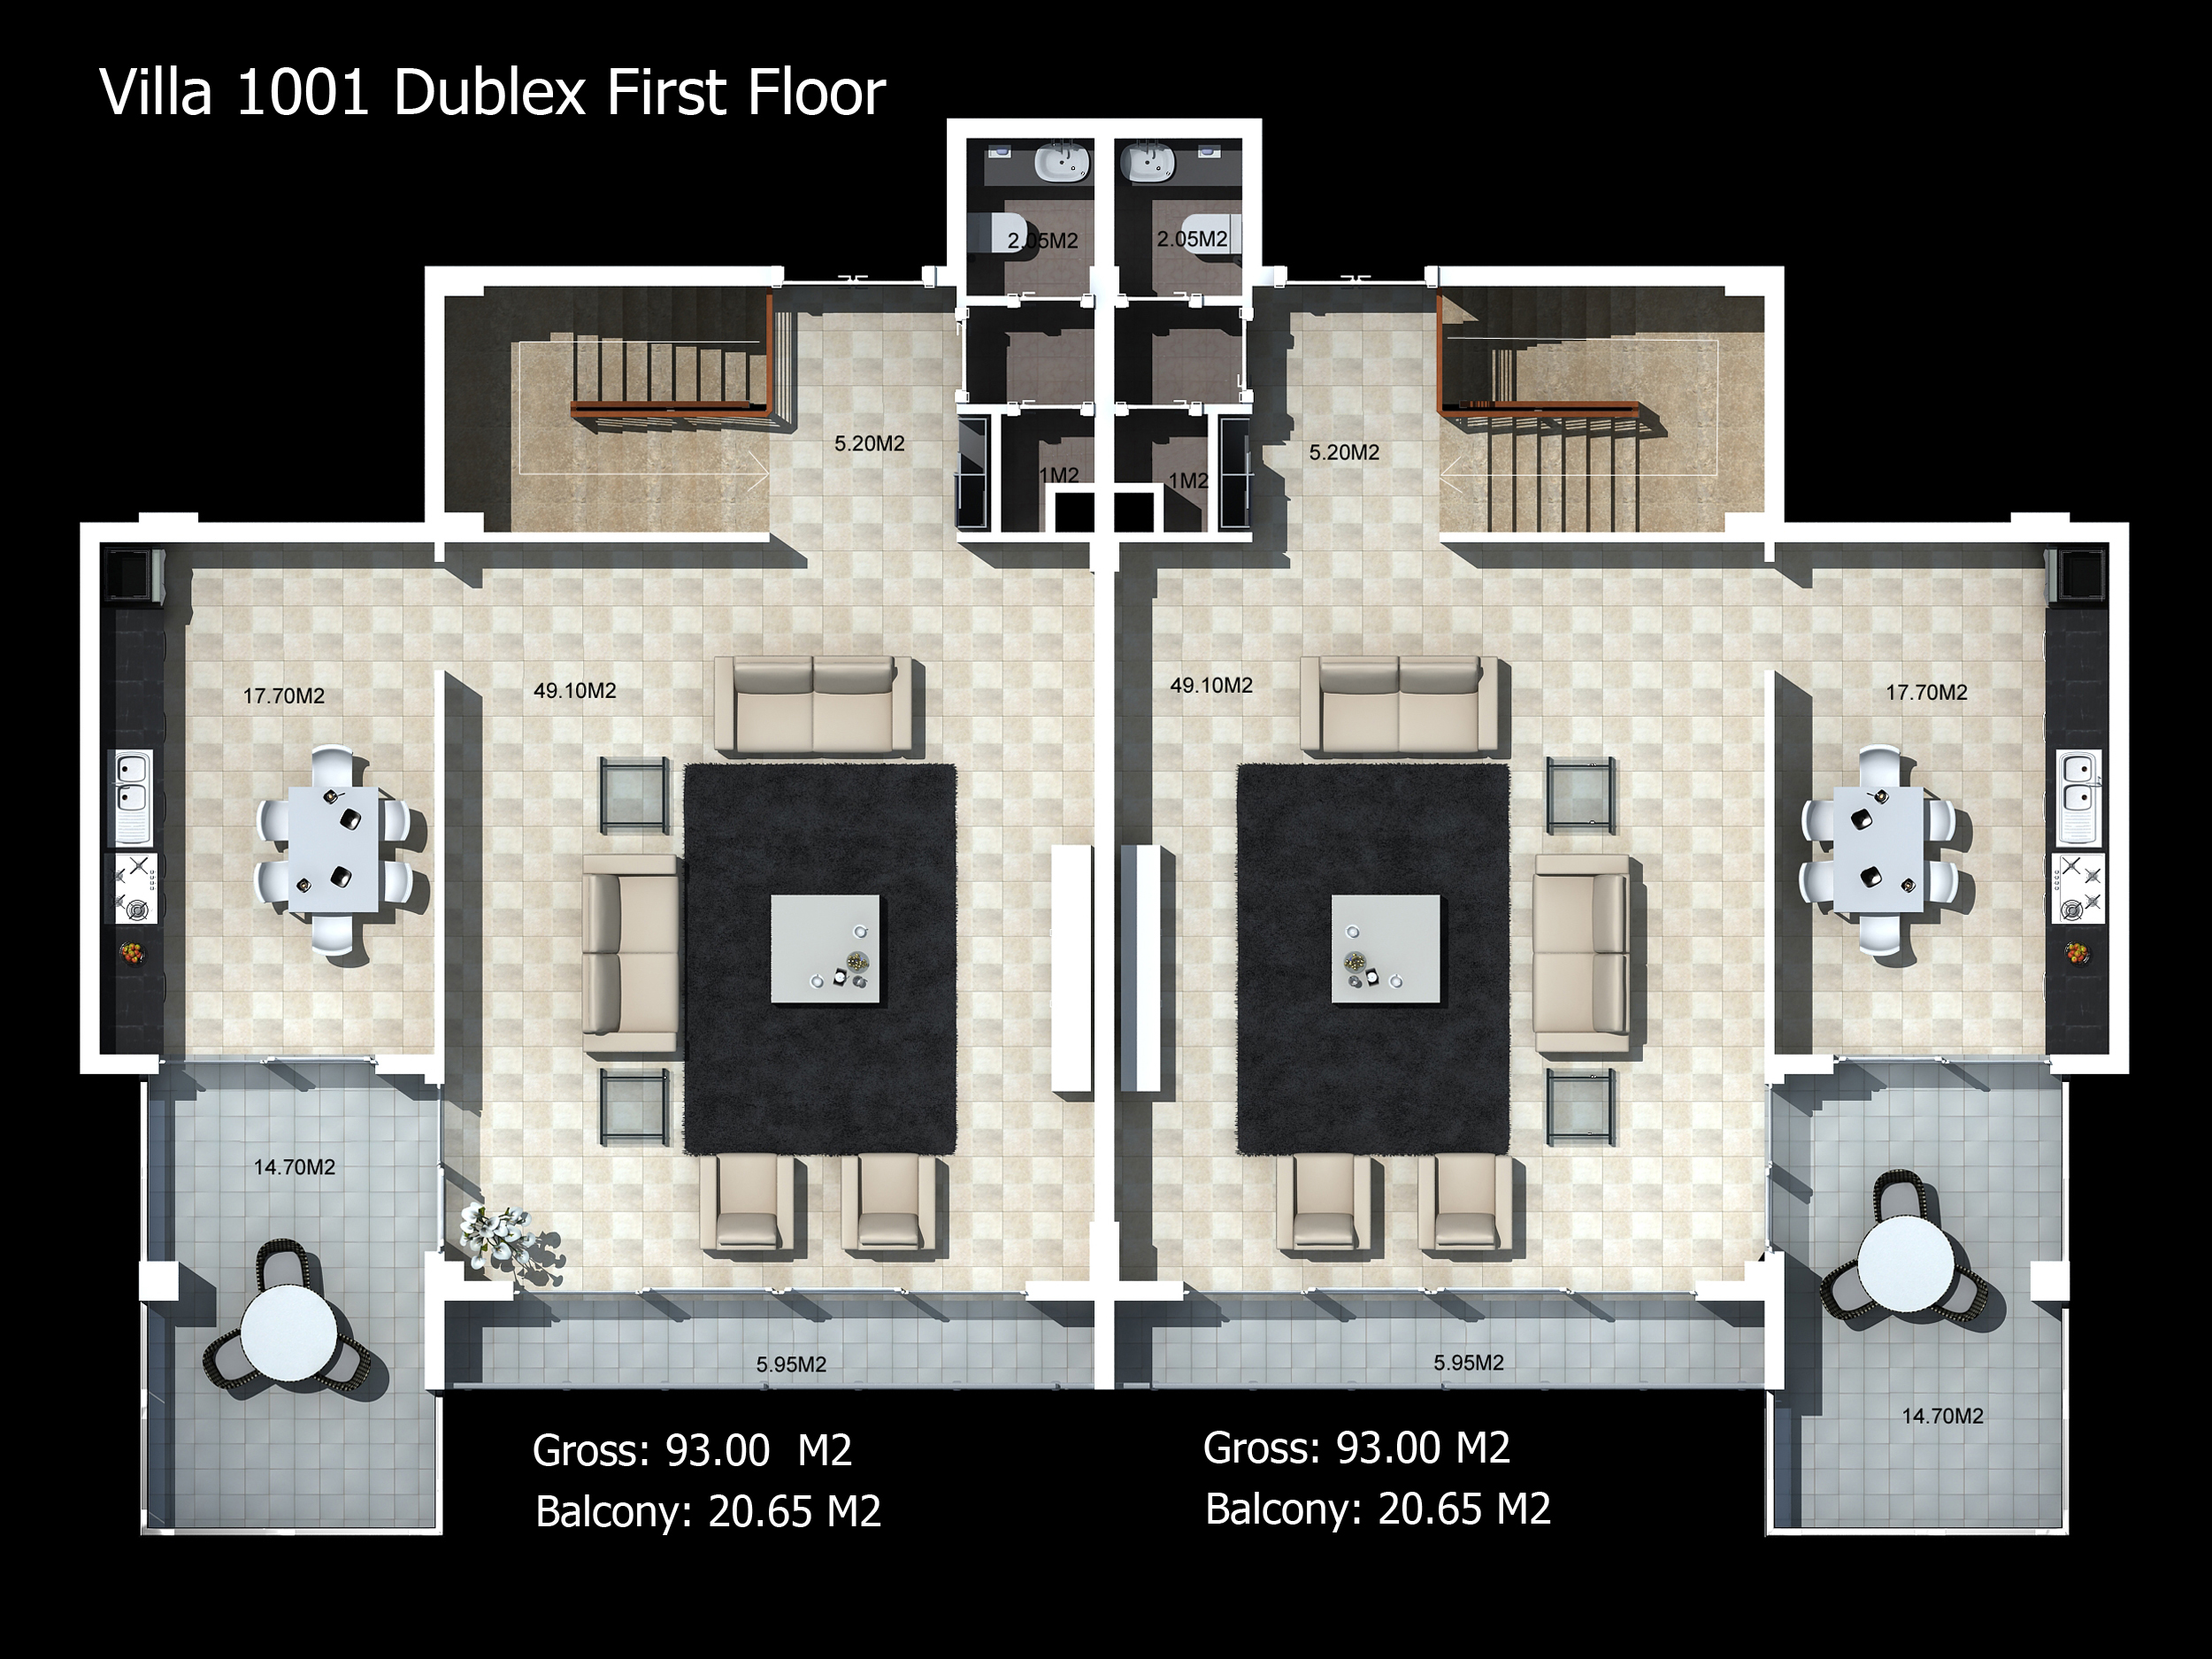 villa-1001-dublex-first-floor